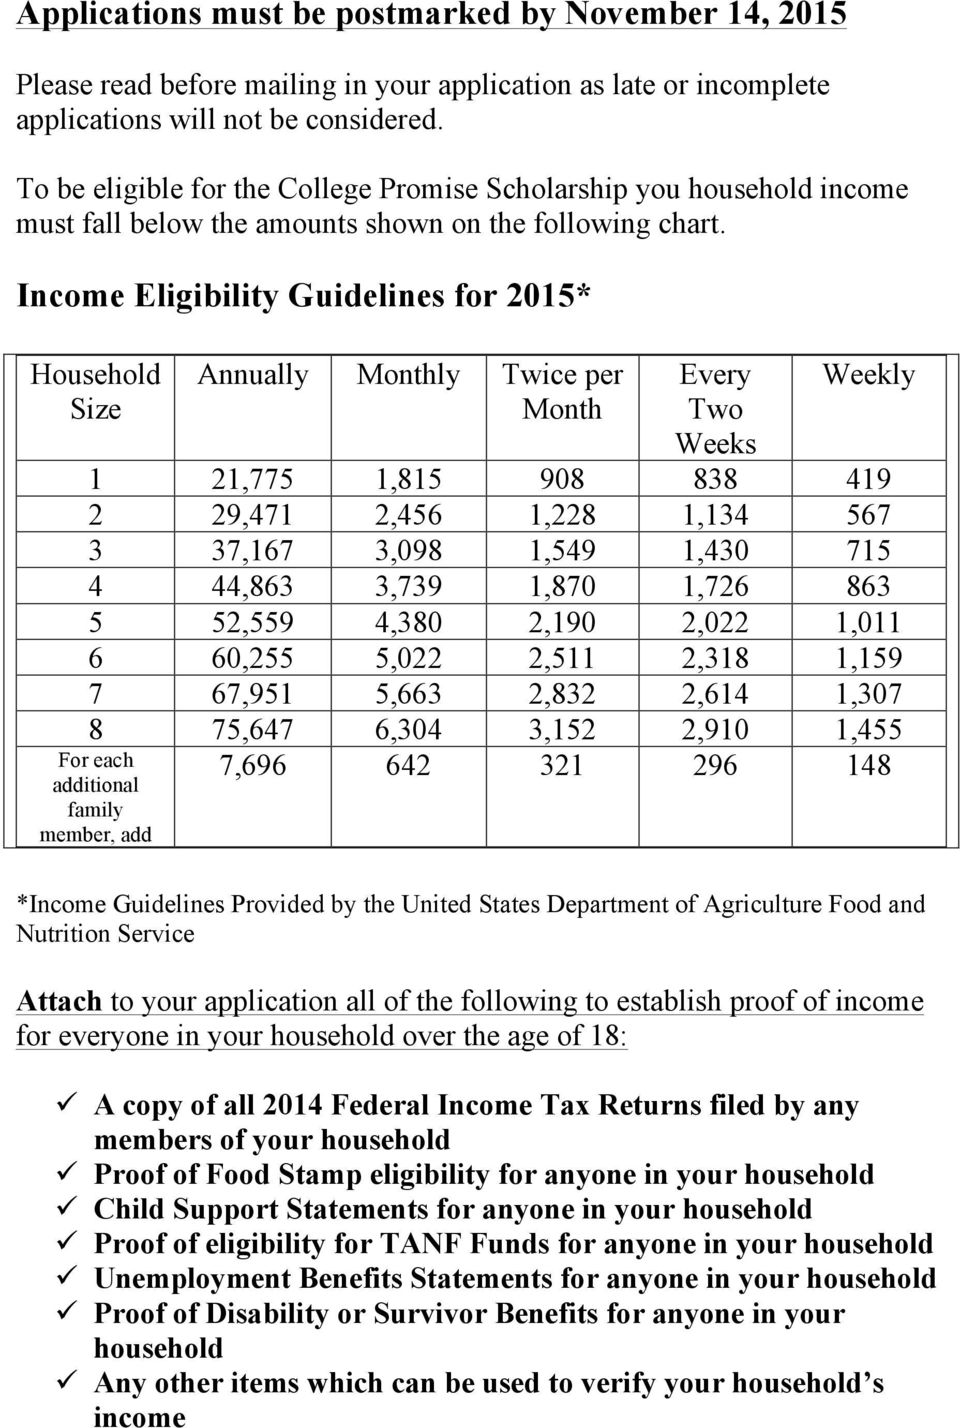 Income Eligibility Guidelines for 2015* Household Size Annually Monthly Twice per Month Every Two Weeks Weekly 1 21,775 1,815 908 838 419 2 29,471 2,456 1,228 1,134 567 3 37,167 3,098 1,549 1,430 715